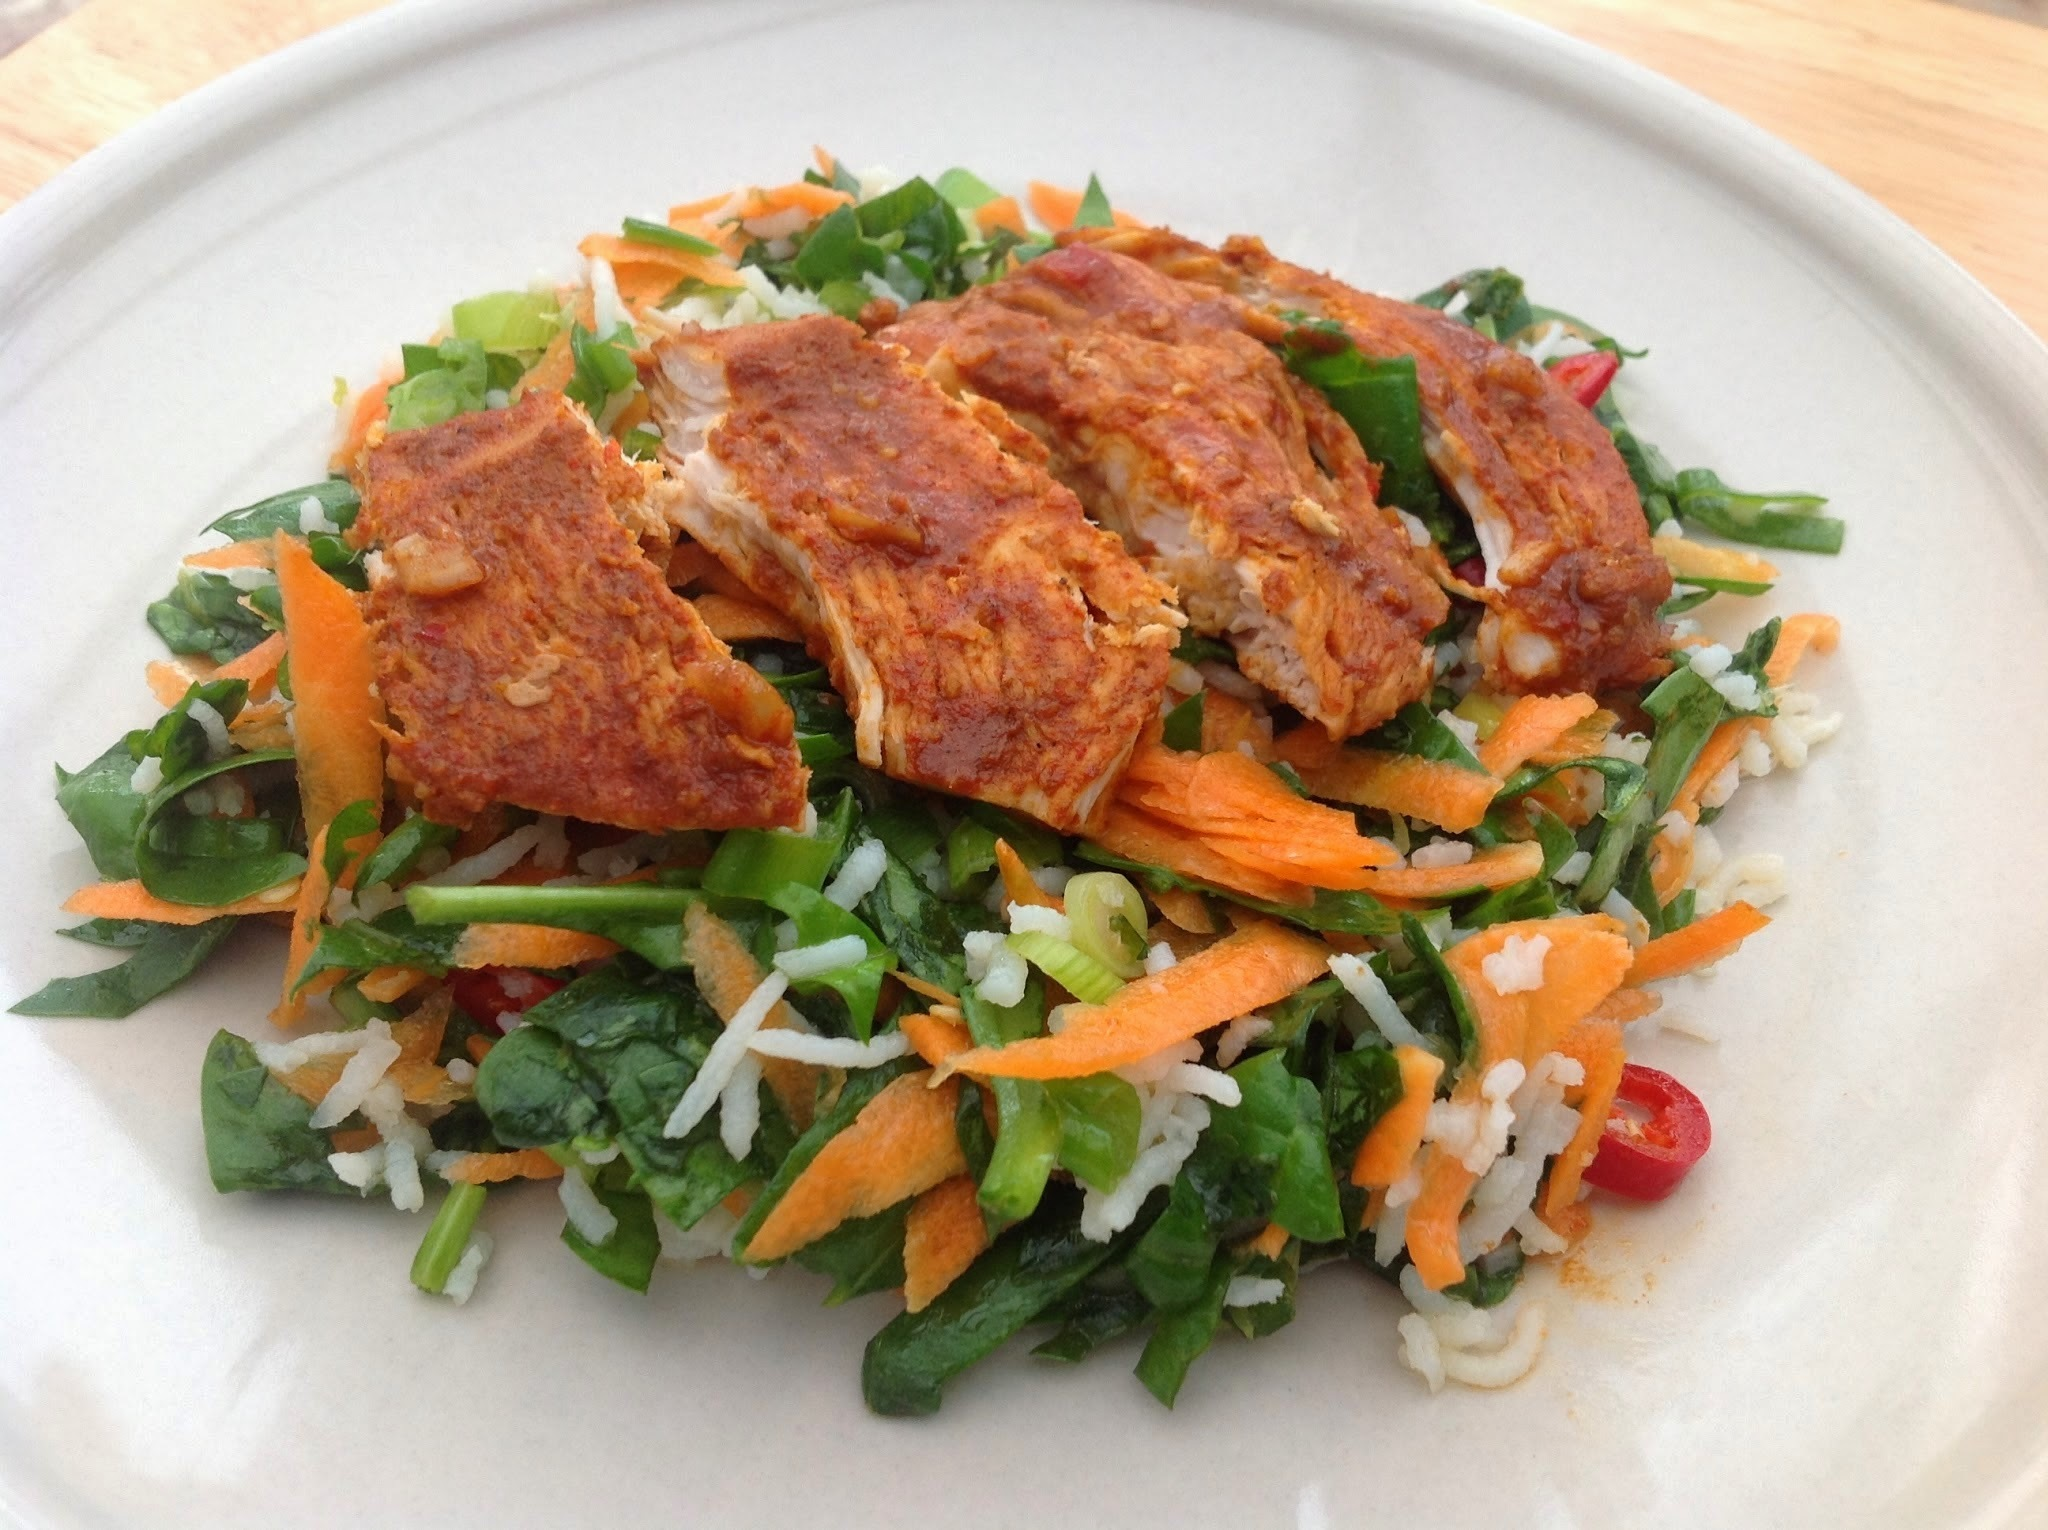 Spicy Chicken with Zesty Rice Salad